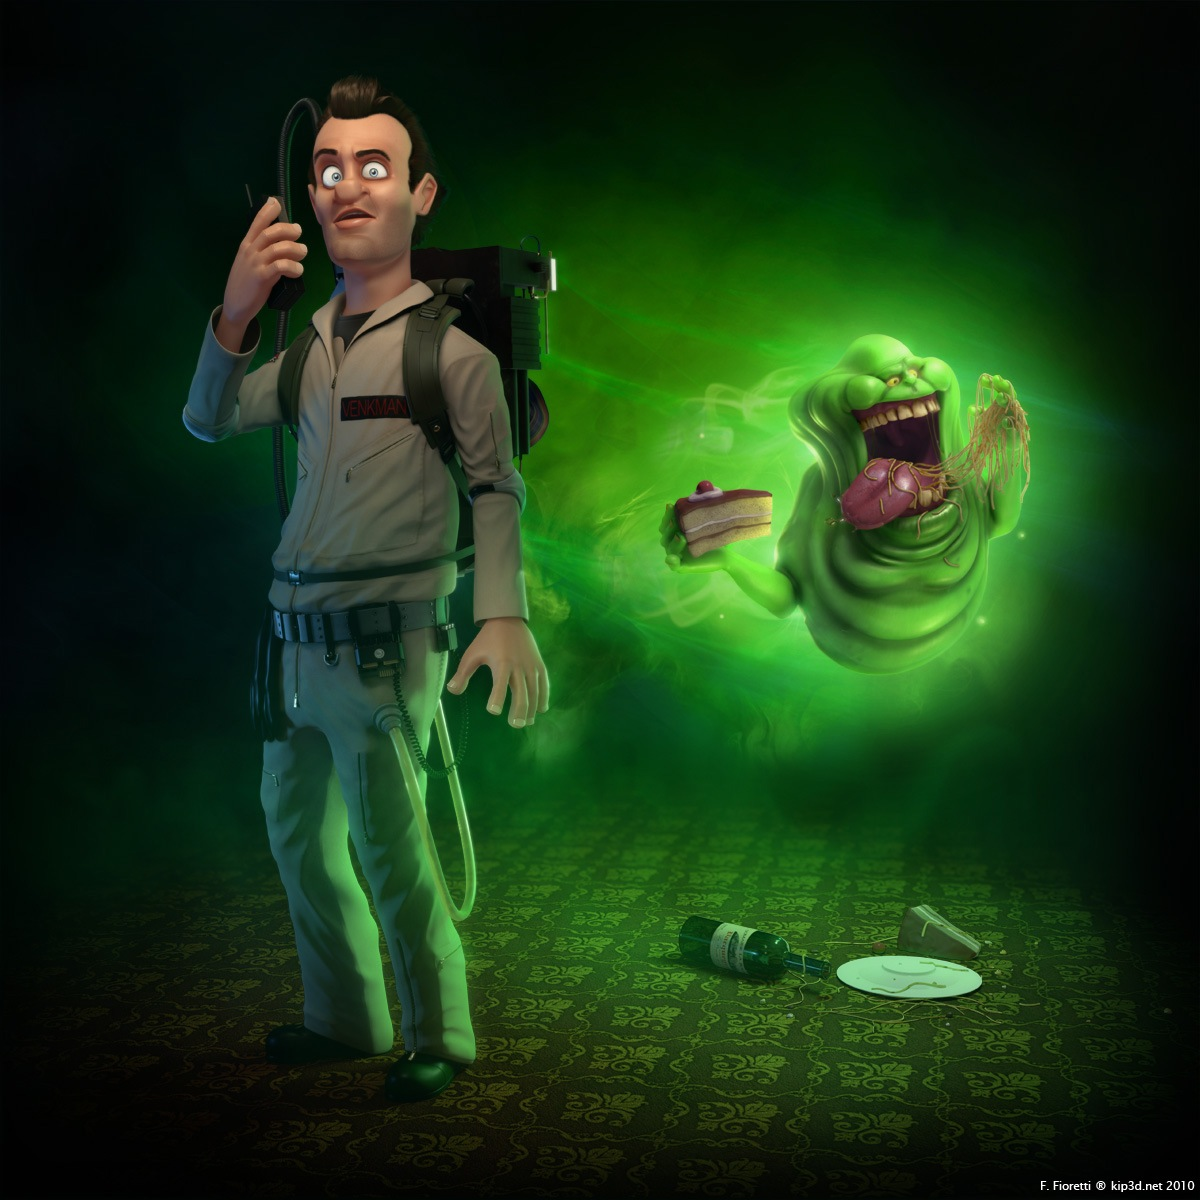 ghostbusters - photo #28